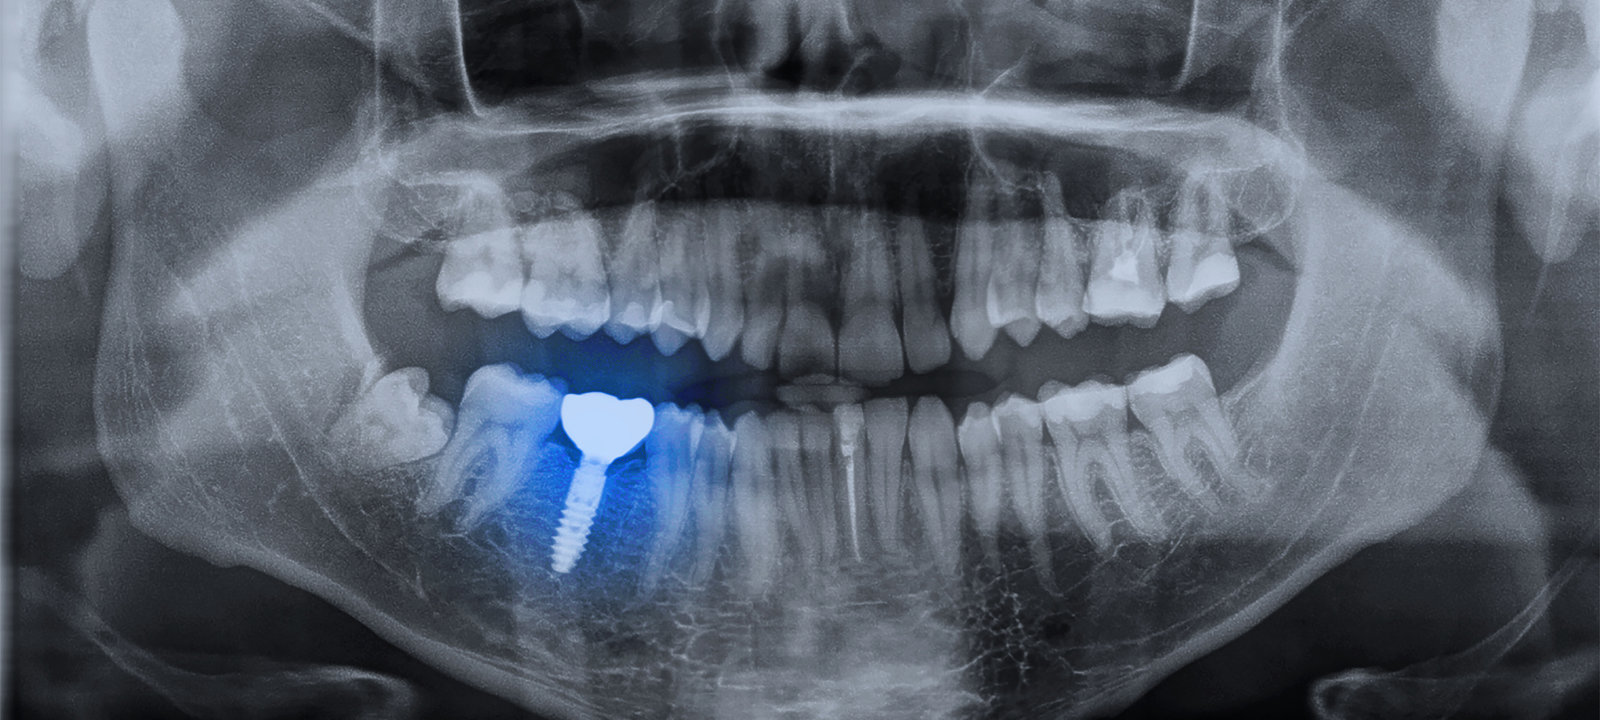 Panoramic-Dental-X-ray-Image-Mouth-Of-Adult-Man